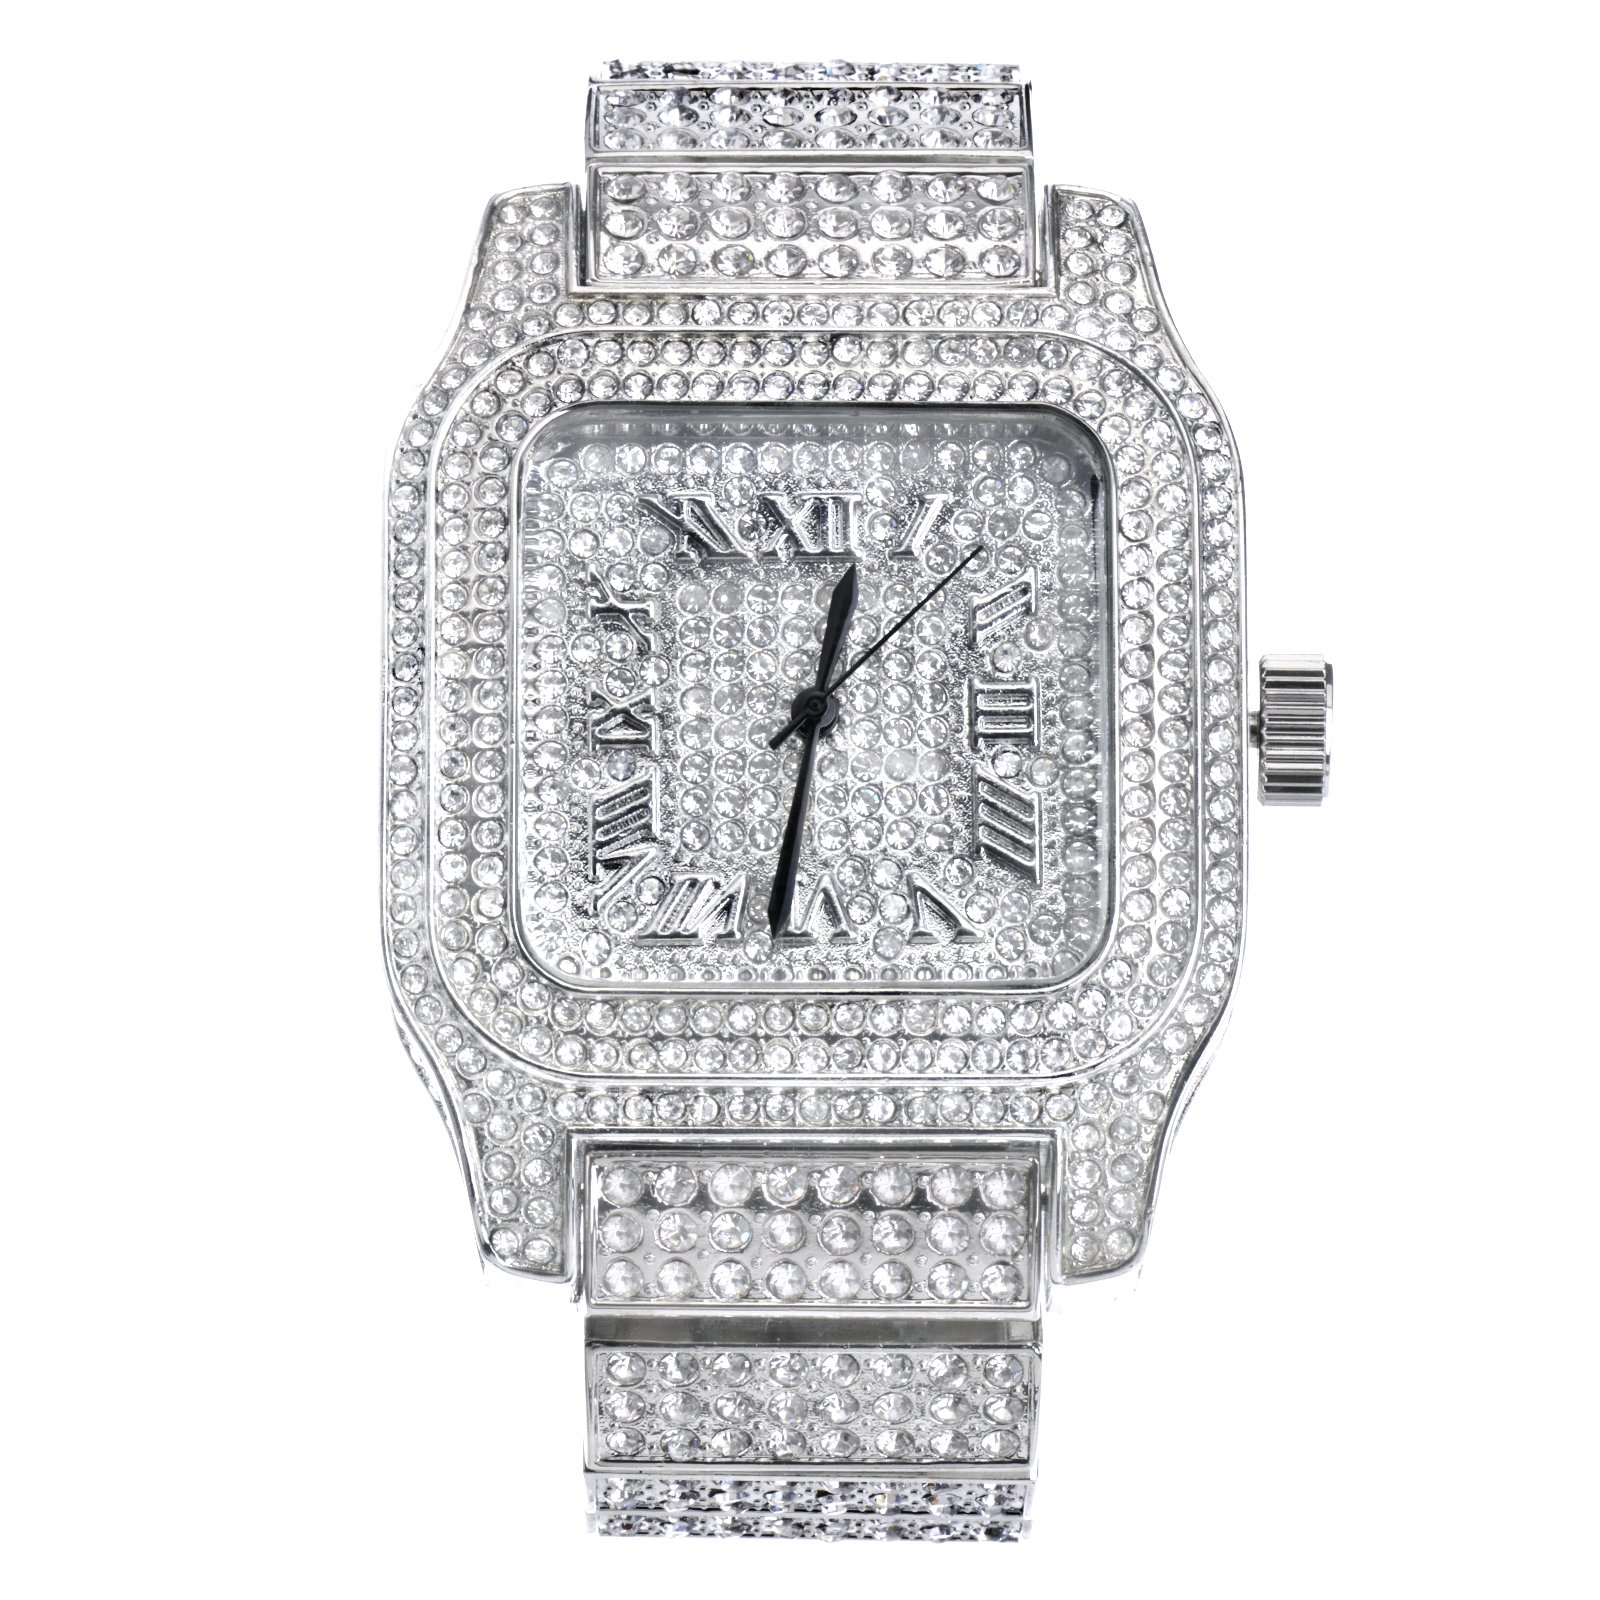 Mens Hip Hop Luxury Iced Out Techno Pave Watch Silver Tone Heavy Bezel Case Band Simulated Diamond WM 7967 S by Metaltree98 (Image #1)